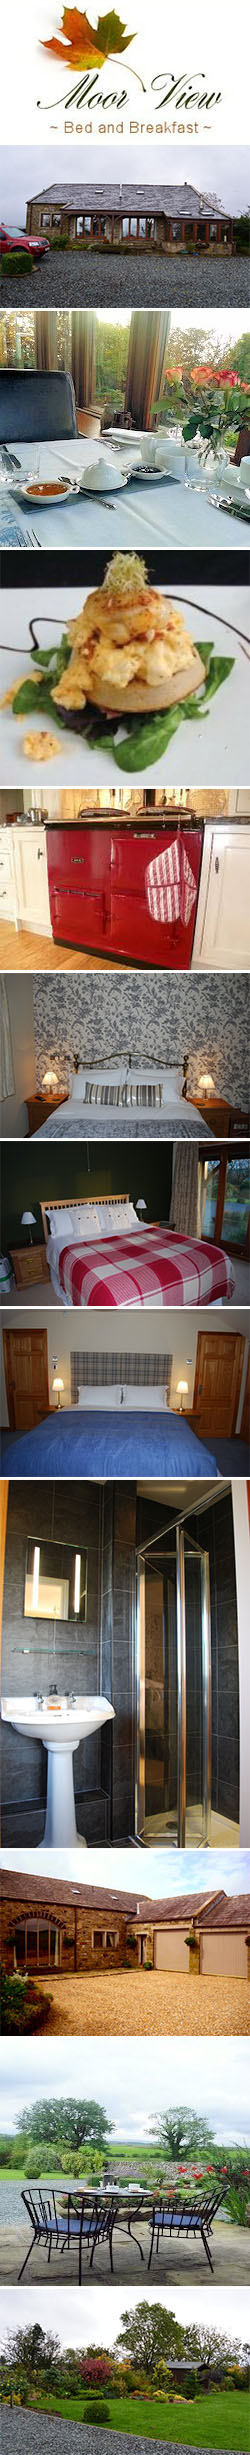 Moor View Bed & Breakfast, Clapham